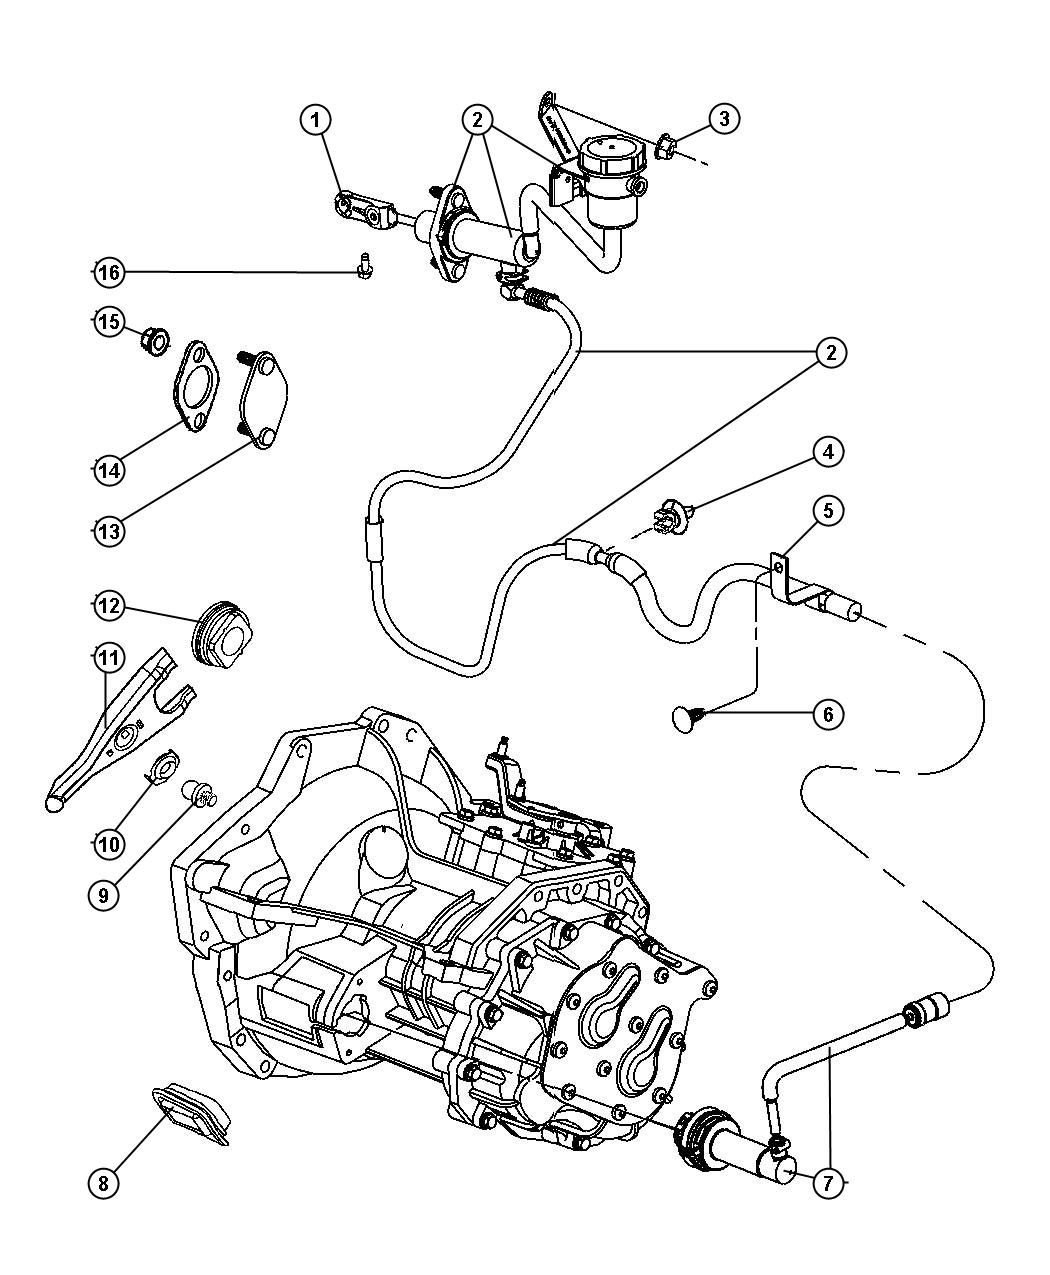 Dodge neon parts diagram